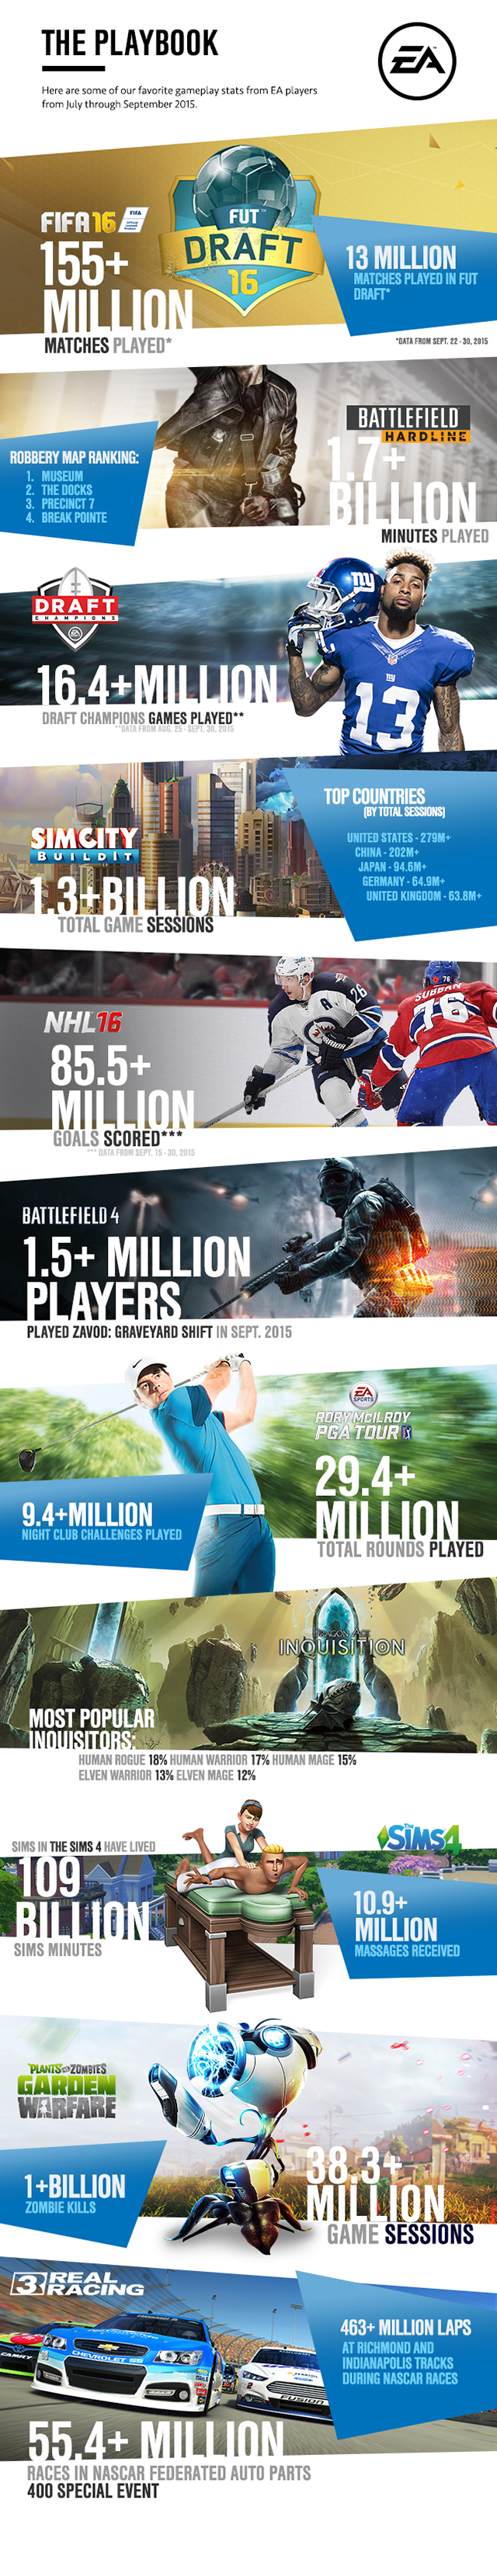 EA by the numbers